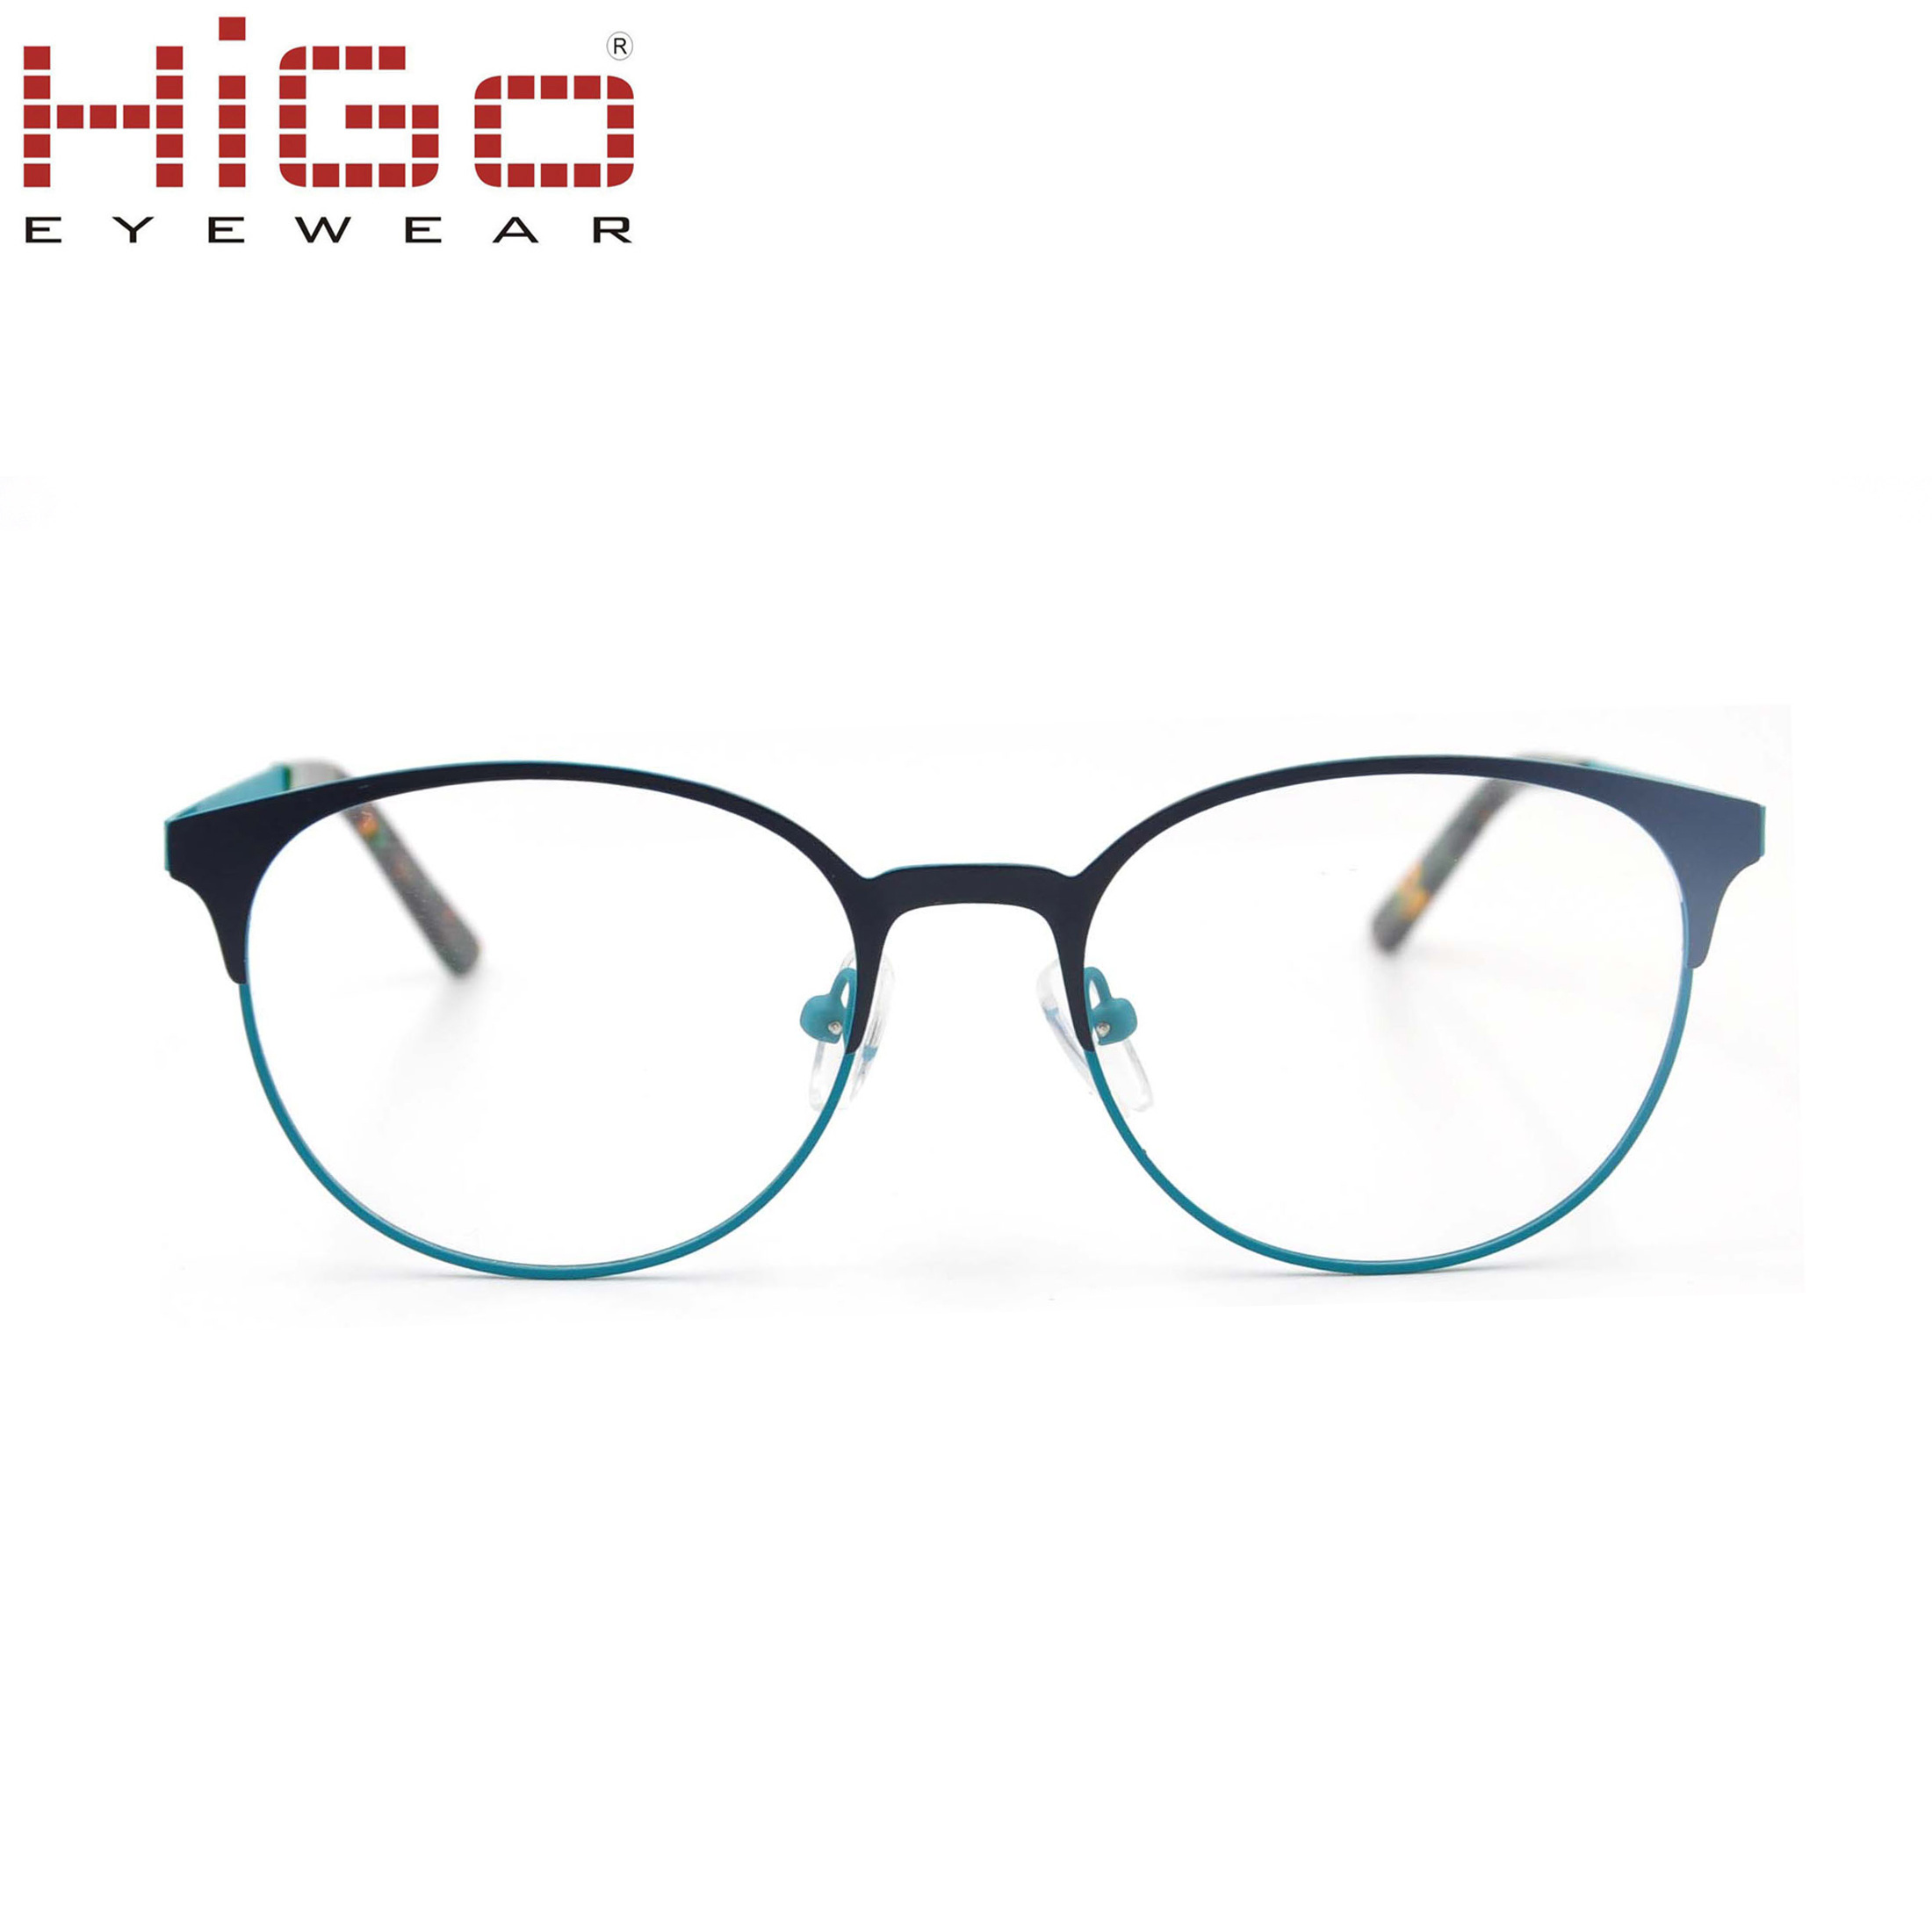 ce7c00d5b72 Factory Wholesale New Models of Oculos Fashion Stainless Eye Glasses Frames